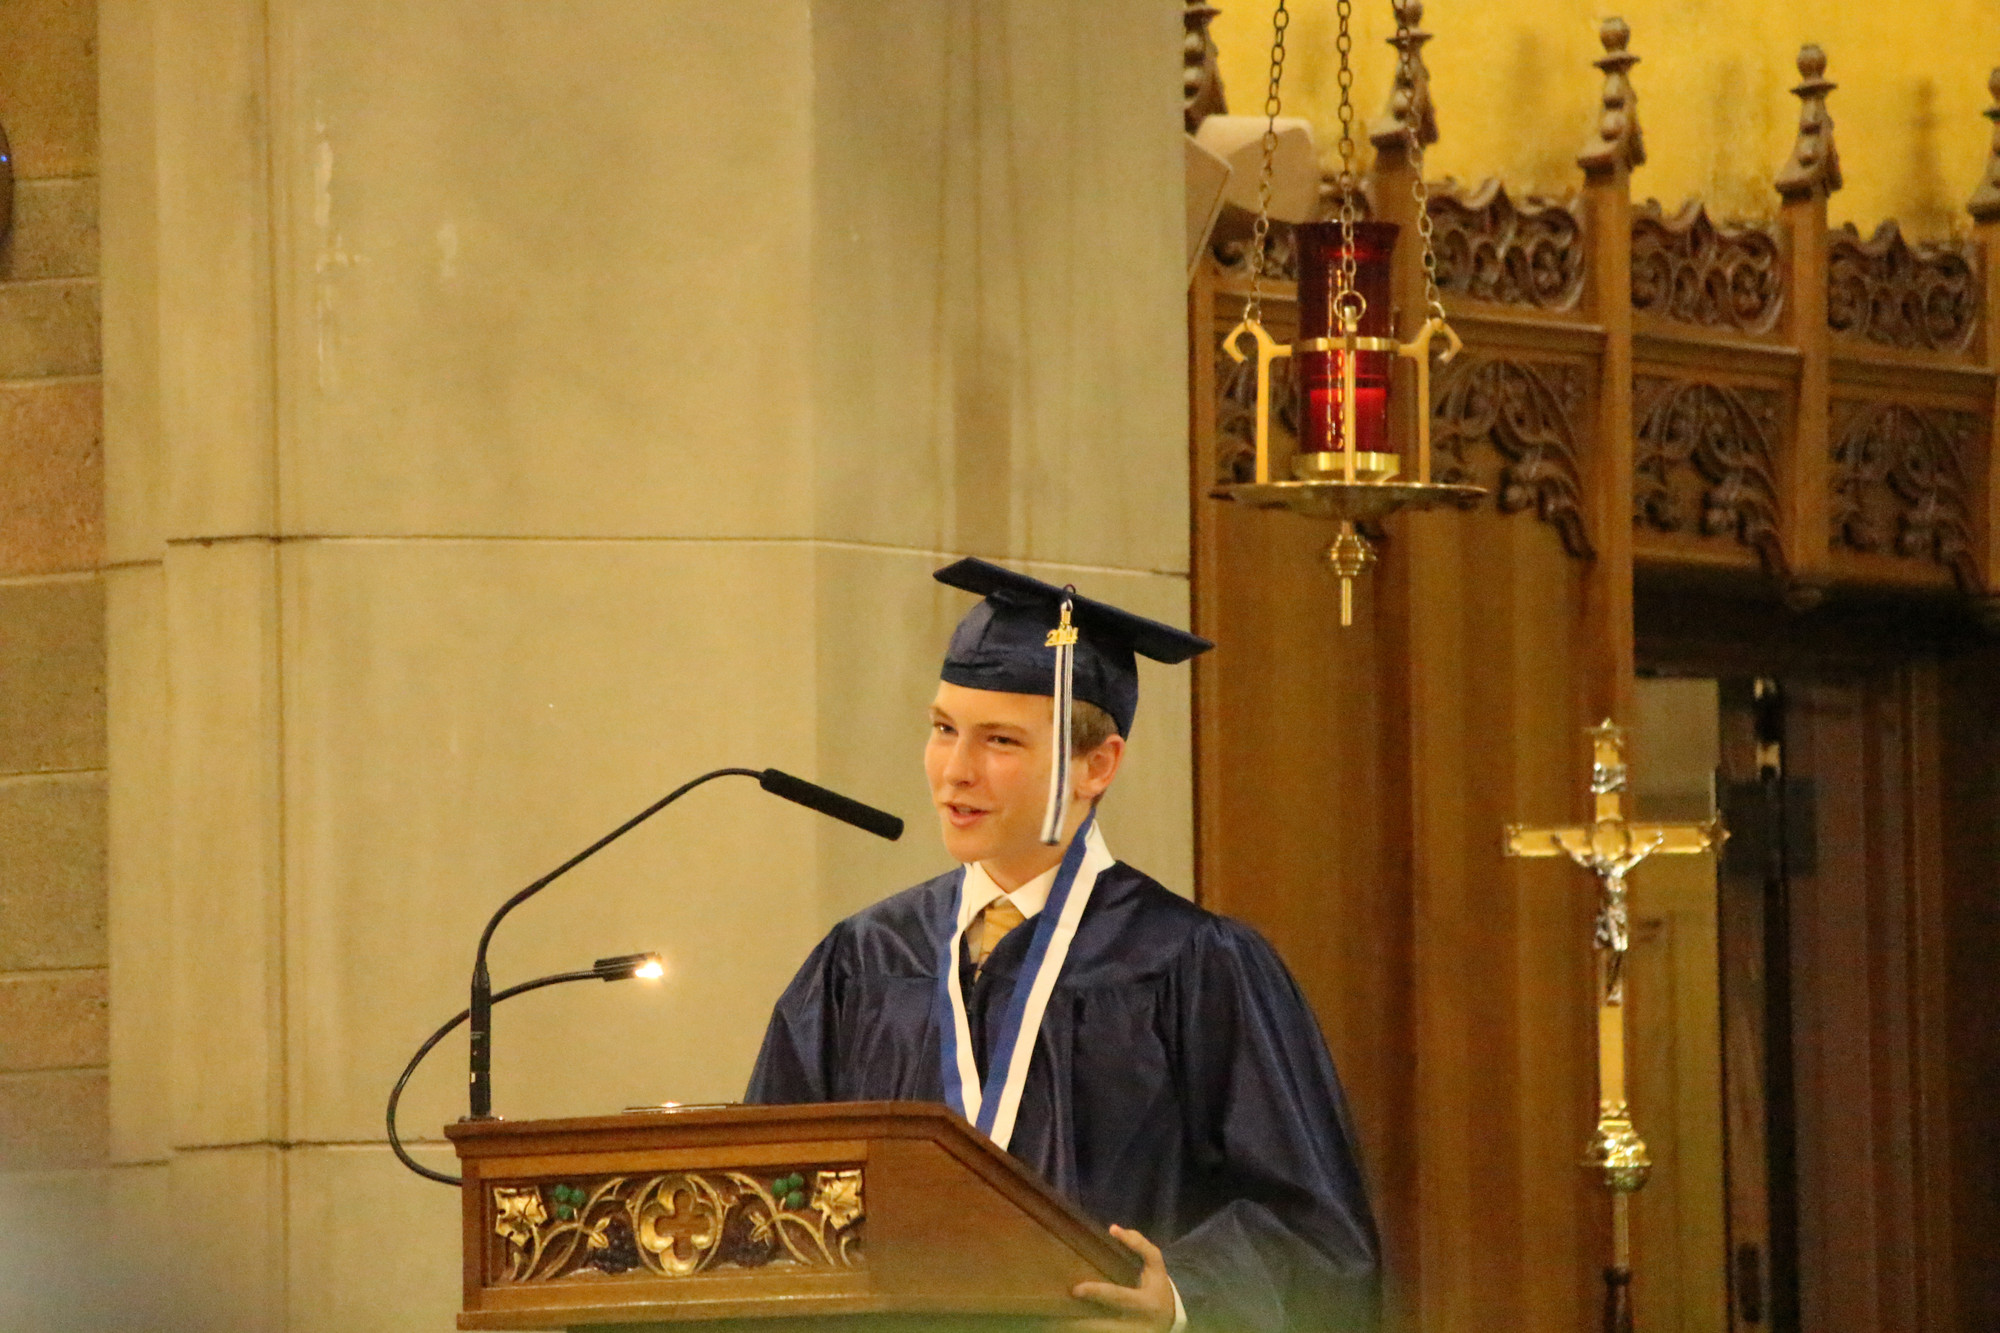 Ryan Herrmann gave a speech of his own, thanking his parents for all of their love and inspiration.